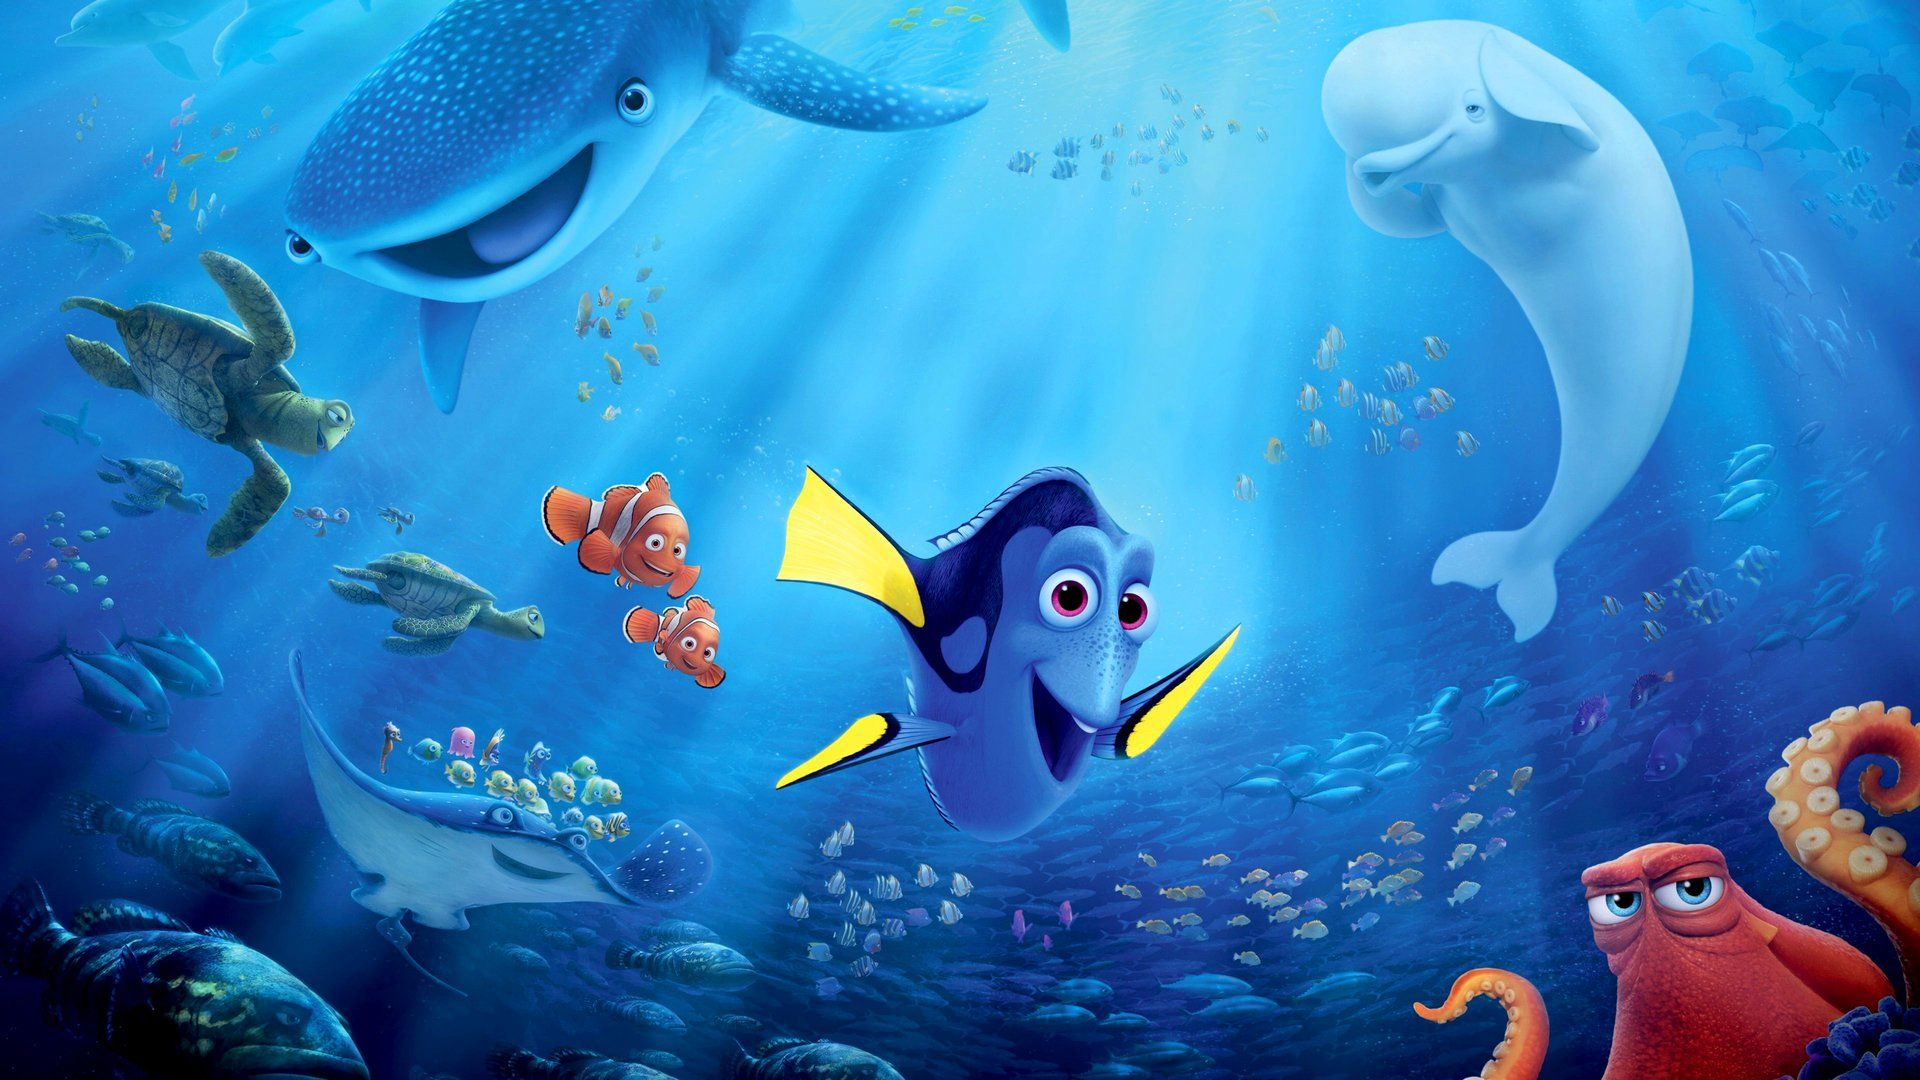 Finding Dory Tell Story About Is Reunited With Her Friends Nemo And Marlin In